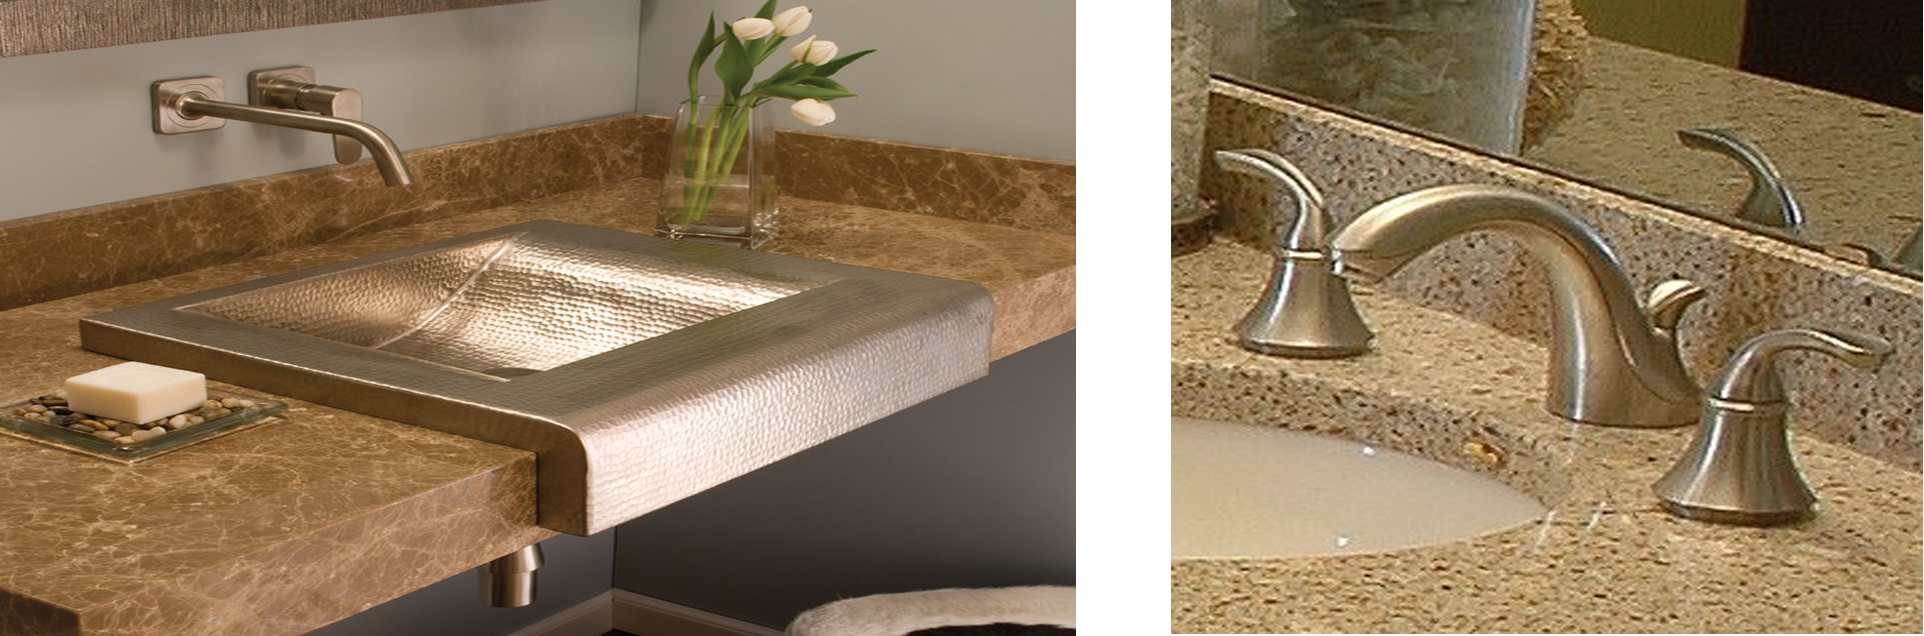 Brushed Nickel Bath Faucets   Difference Between Satin Nickel And Chrome